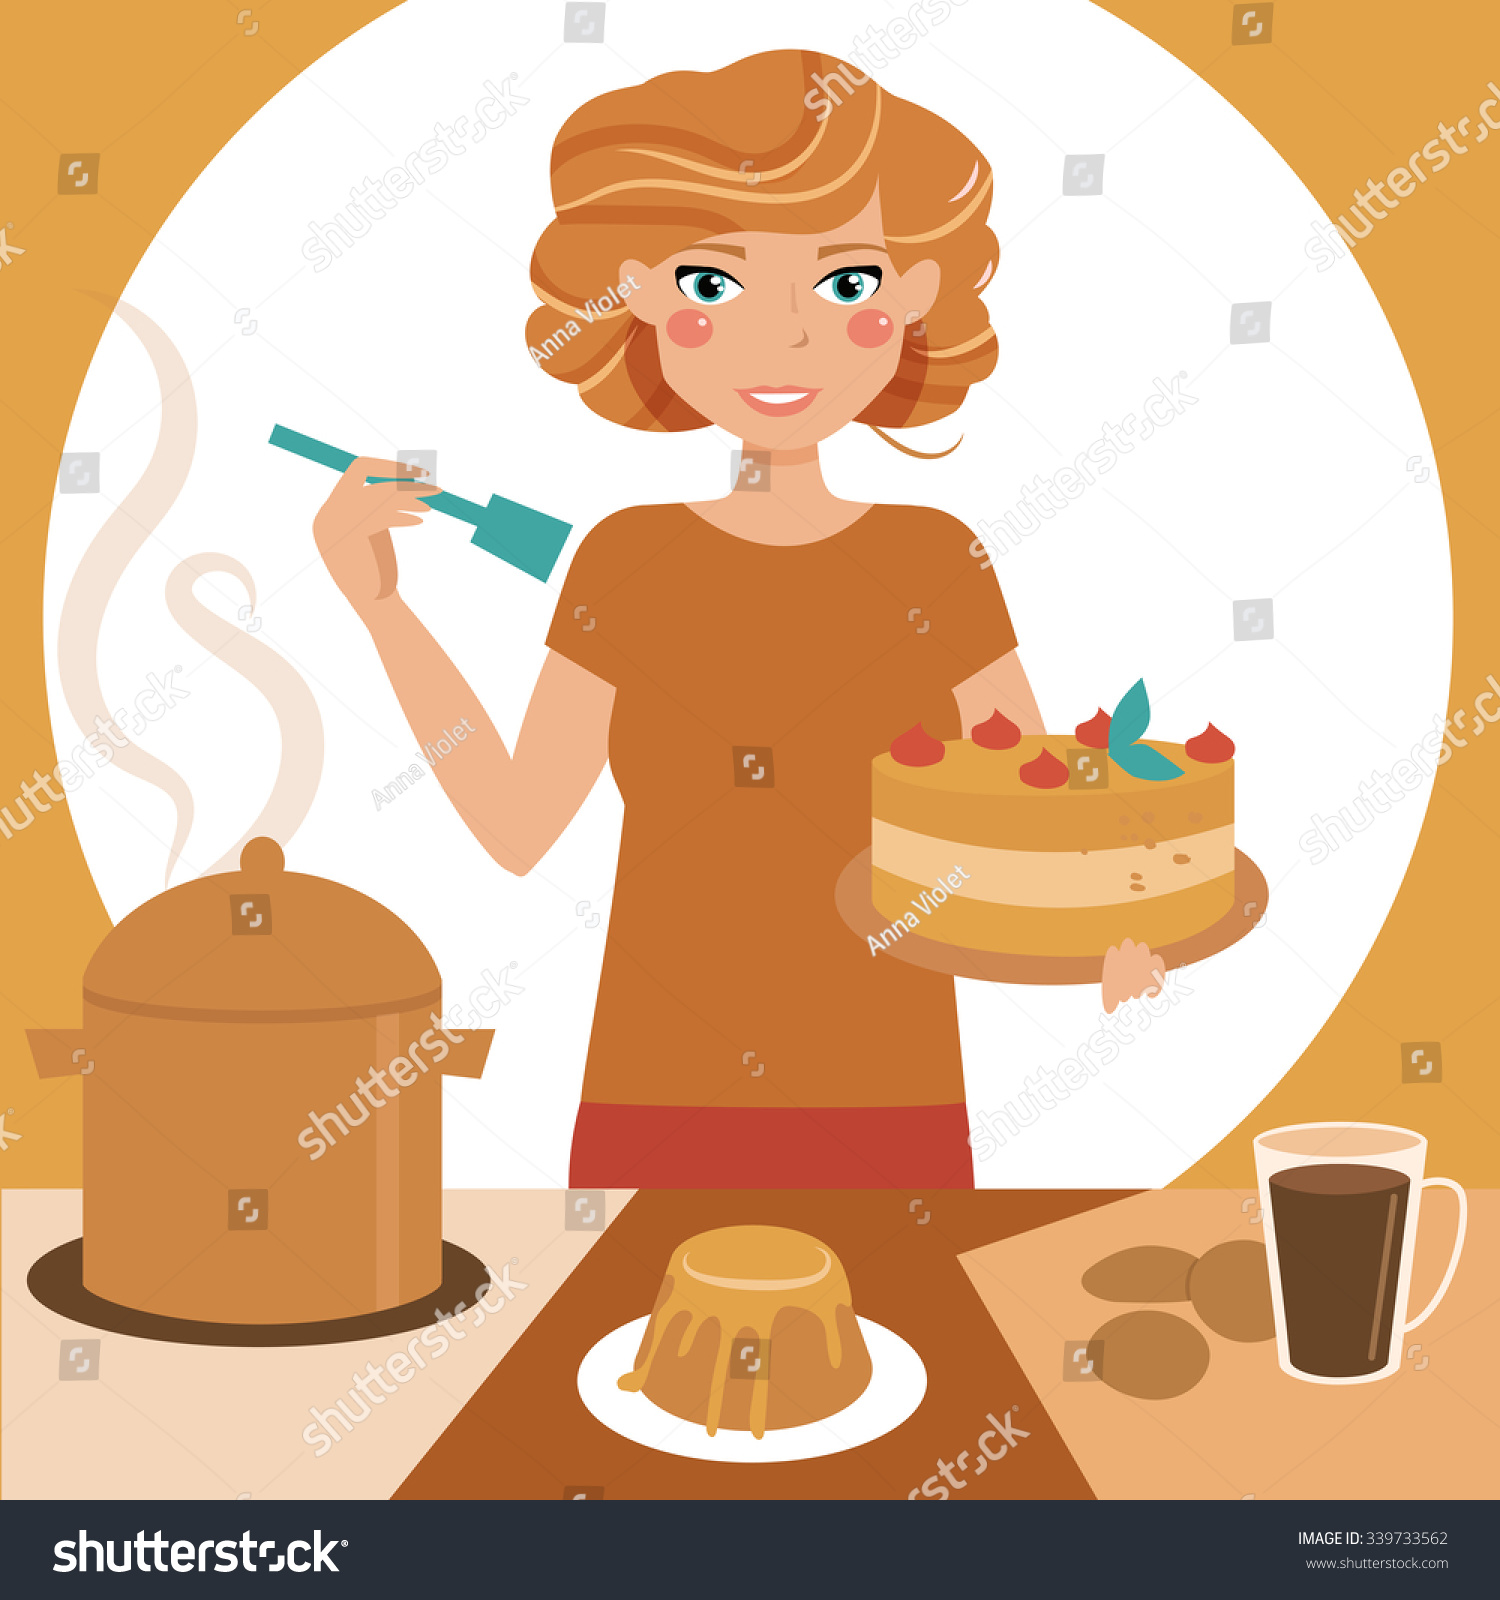 Selection of cartoons on cooking kitchens food and eating - Girl Are Cooking Woman In The Kitchen Wife Chef Vector Isolated Illustration